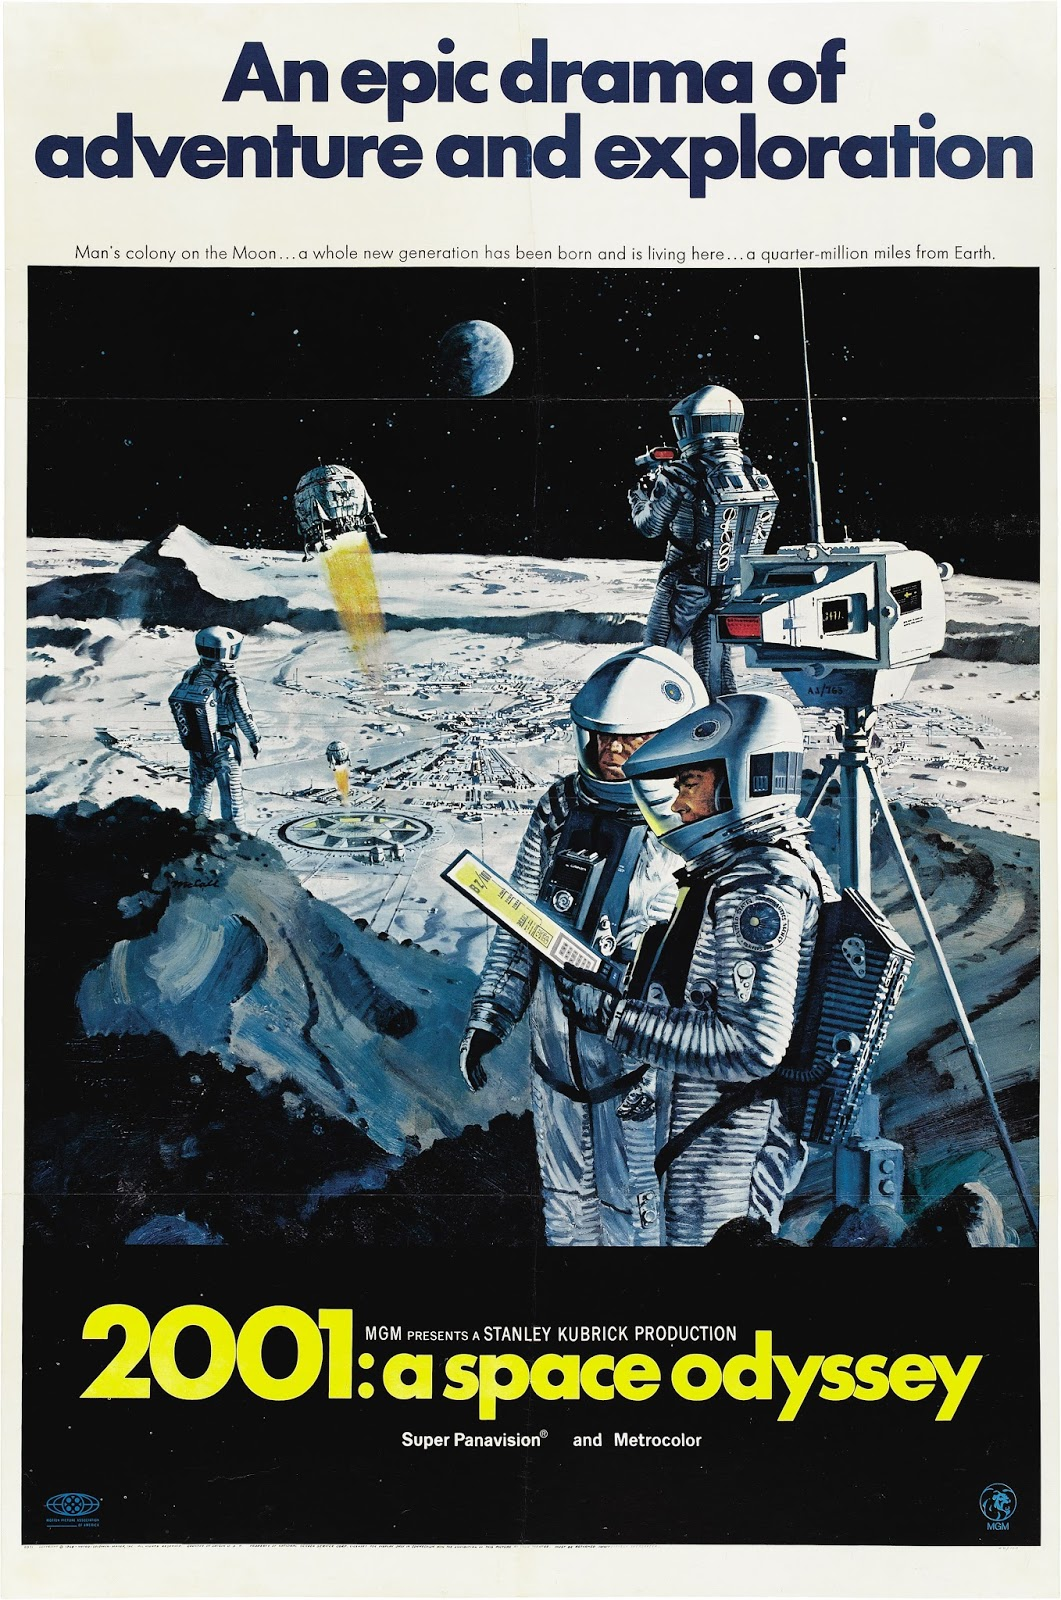 The theatrical release poster for 2001: A Space Odyssey. It depicts a painting on a white page. The tagline of the movie is shown on the white part of the page above the painting. It reads: An epic drama of adventure and exploration. The painting shows four astronauts on the moon. The two in the foreground are looking at a computer tablet. The two in the background stare in different directions as a couple of round spacecraft launch from the lunar face.